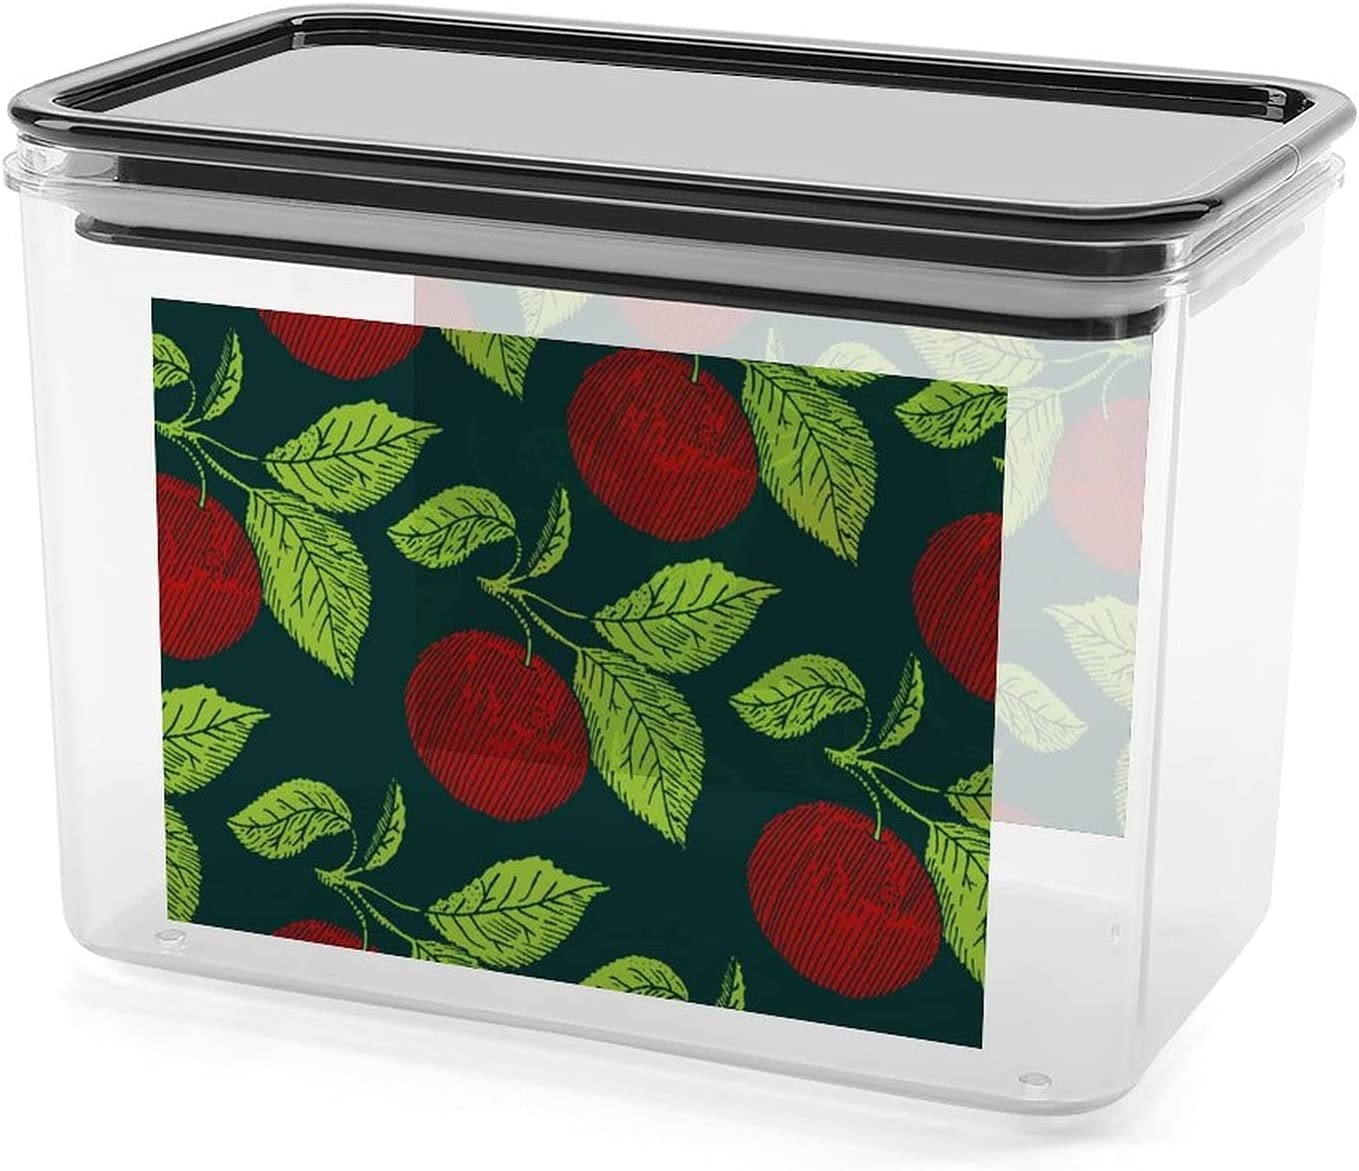 Retro Apple Pattern Airtight Food Storage Containers Plastic Kitchen Storage Containers for Bulk Food Flour Sugar and Baking Supplies